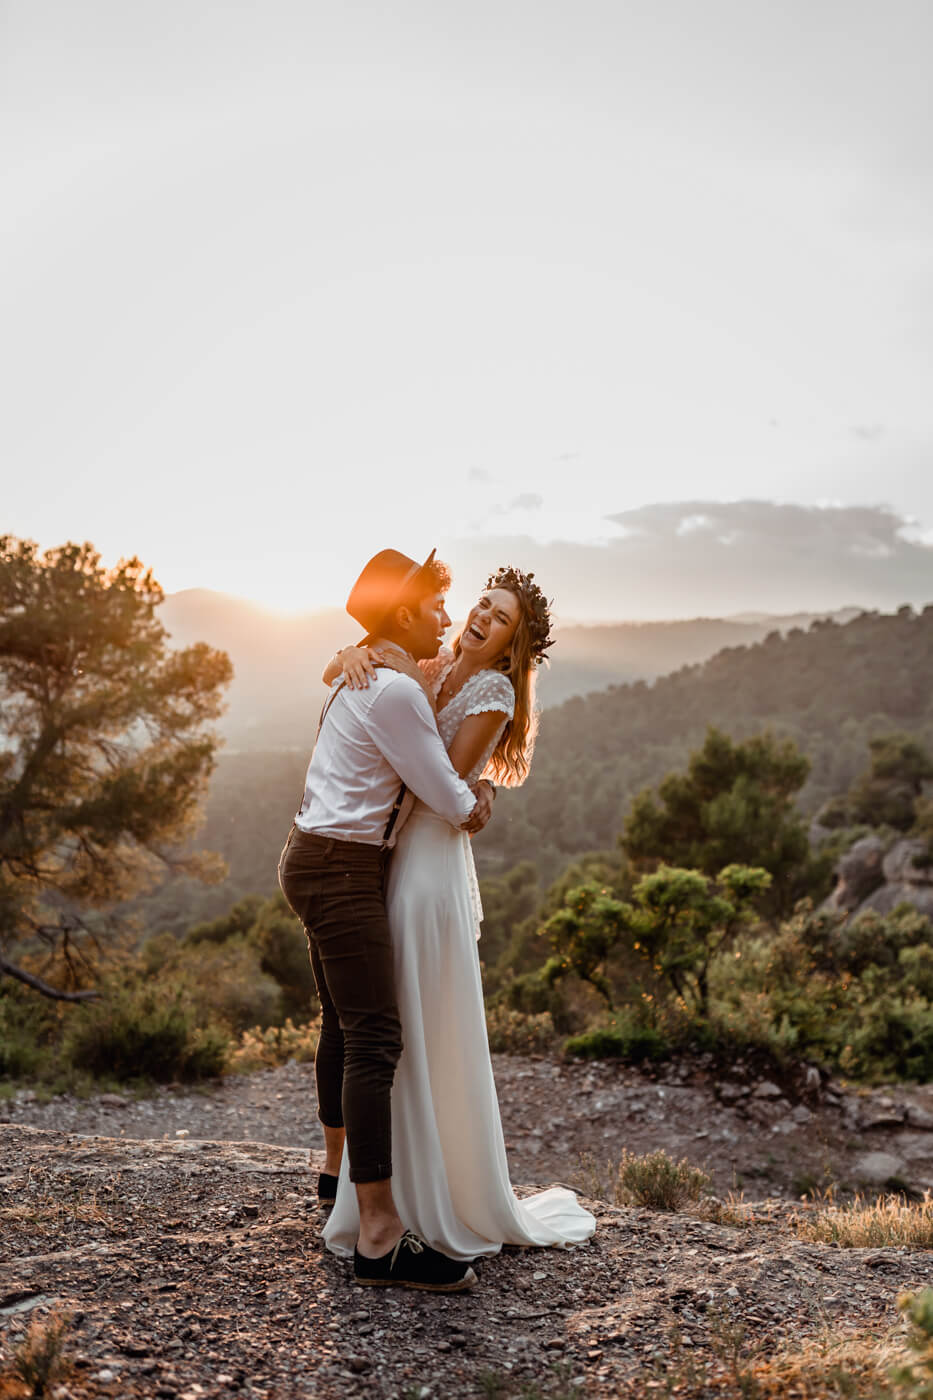 Best Wedding Elopement photographer Barcelona Svobodova